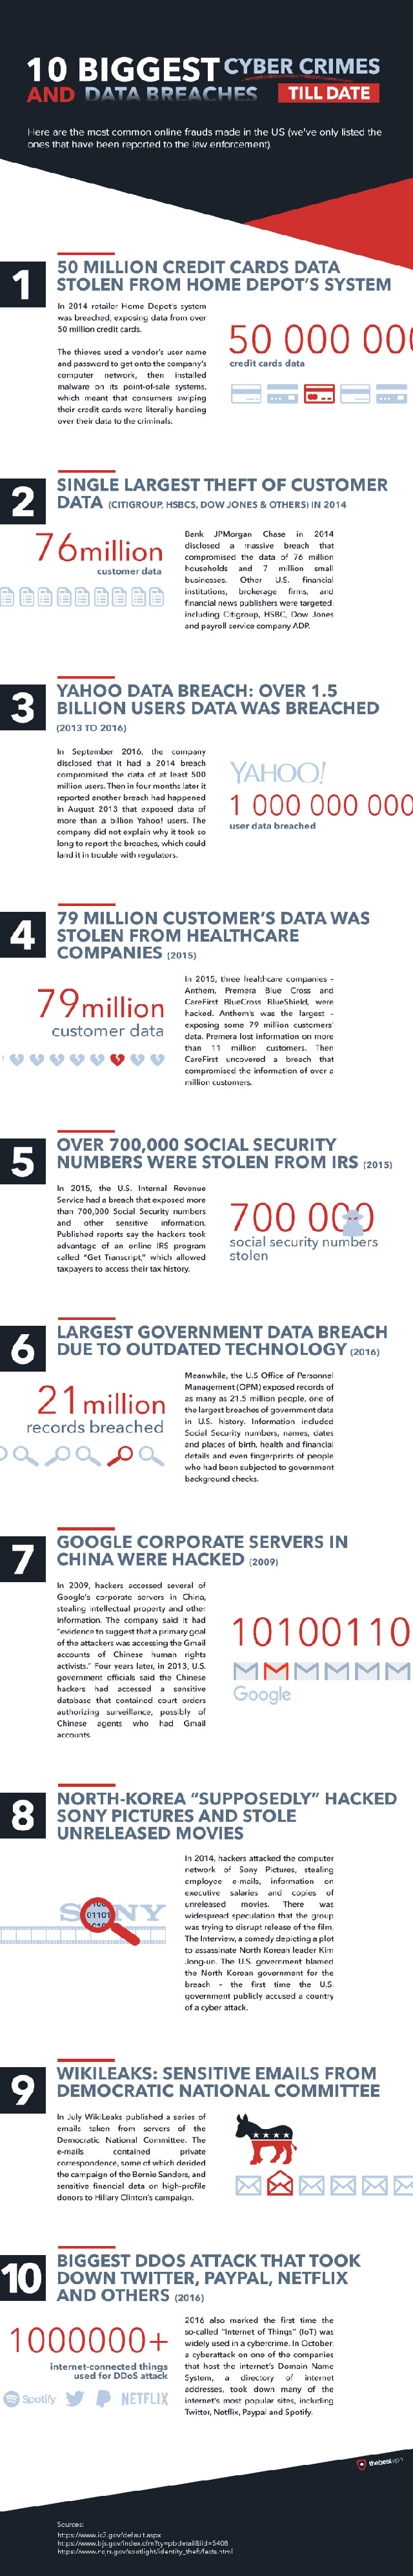 Biggest ciber crimes infographic